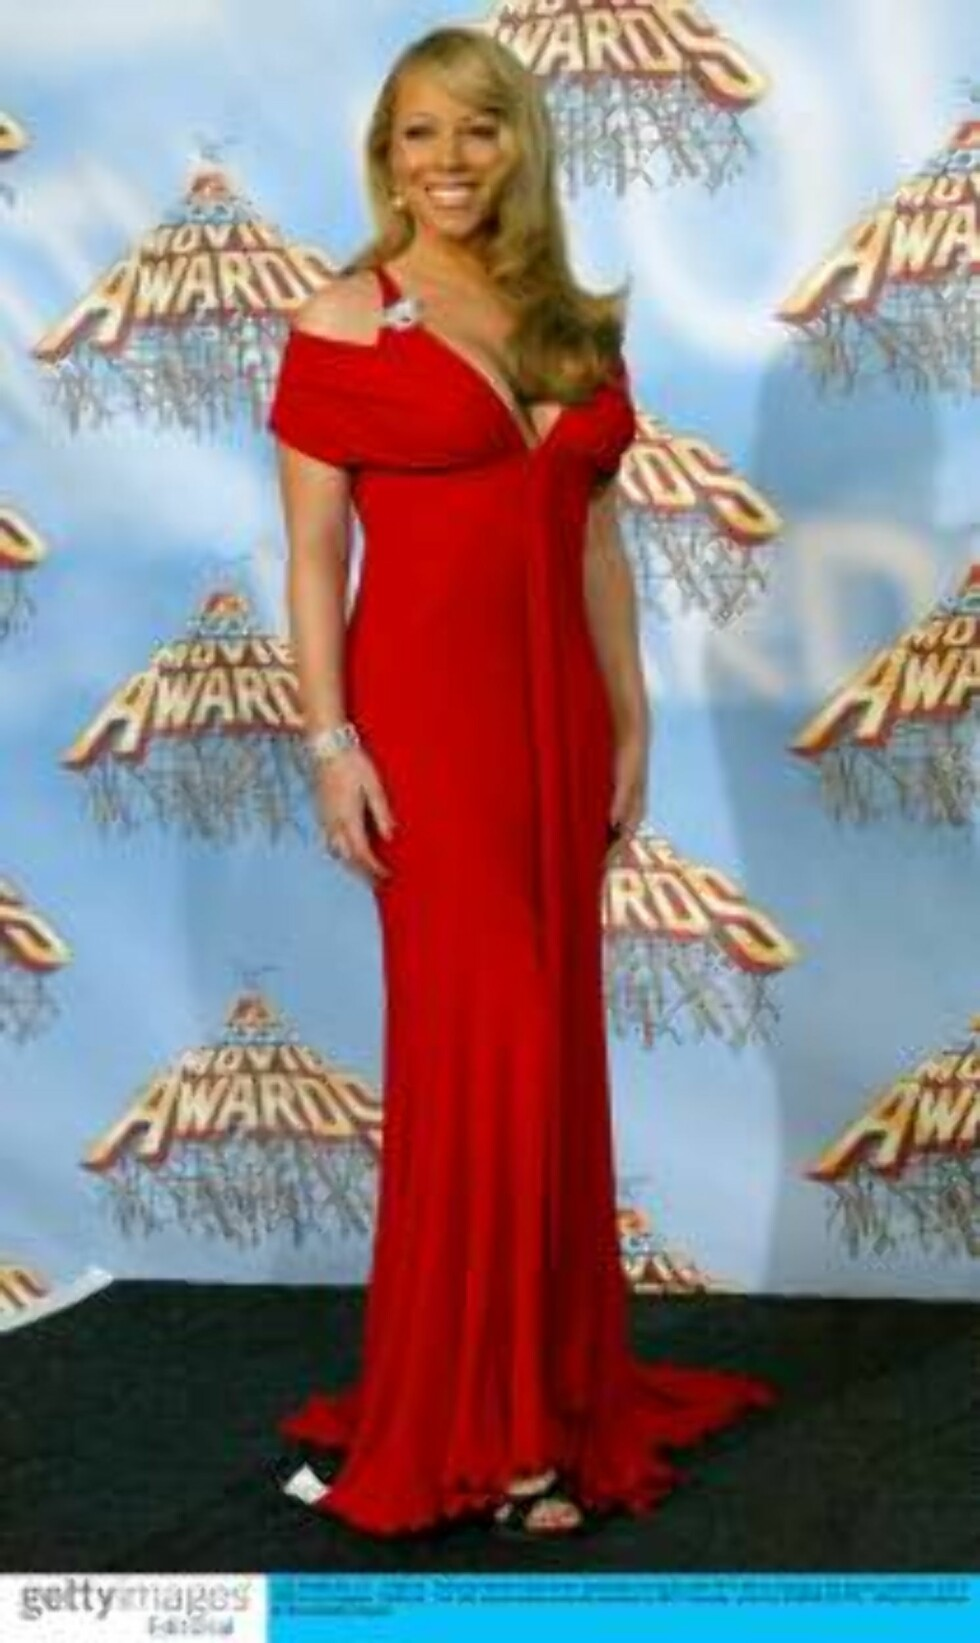 LOS ANGELES, CA - JUNE 04:  Peformer Mariah Carey poses backstage during the 2005 MTV Movie Awards at the Shrine Auditorium June 4, 2005 in Los Angeles, California.  The 14th annual award show will premiere on MTV Thursday, June 9 at 9:00PM (ET/PT).  (Pho Foto: All Over Press